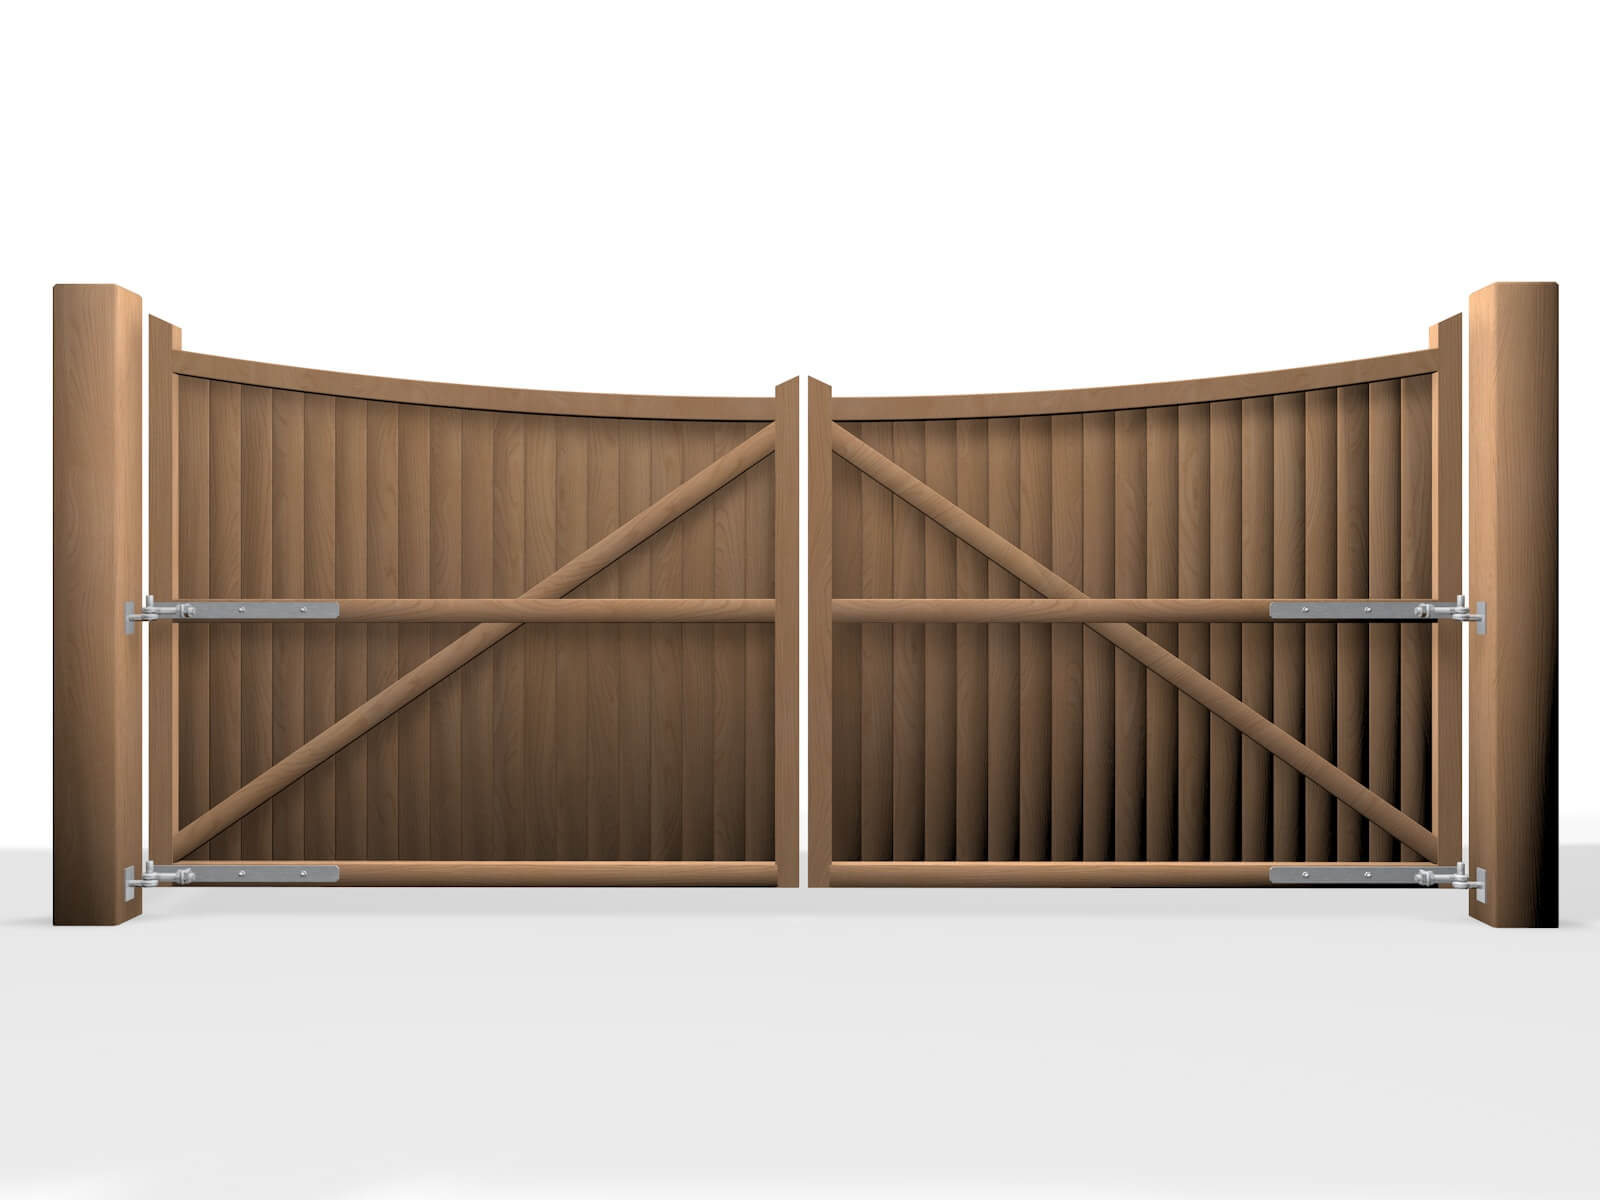 arch bow top wooden swinging gate bristol